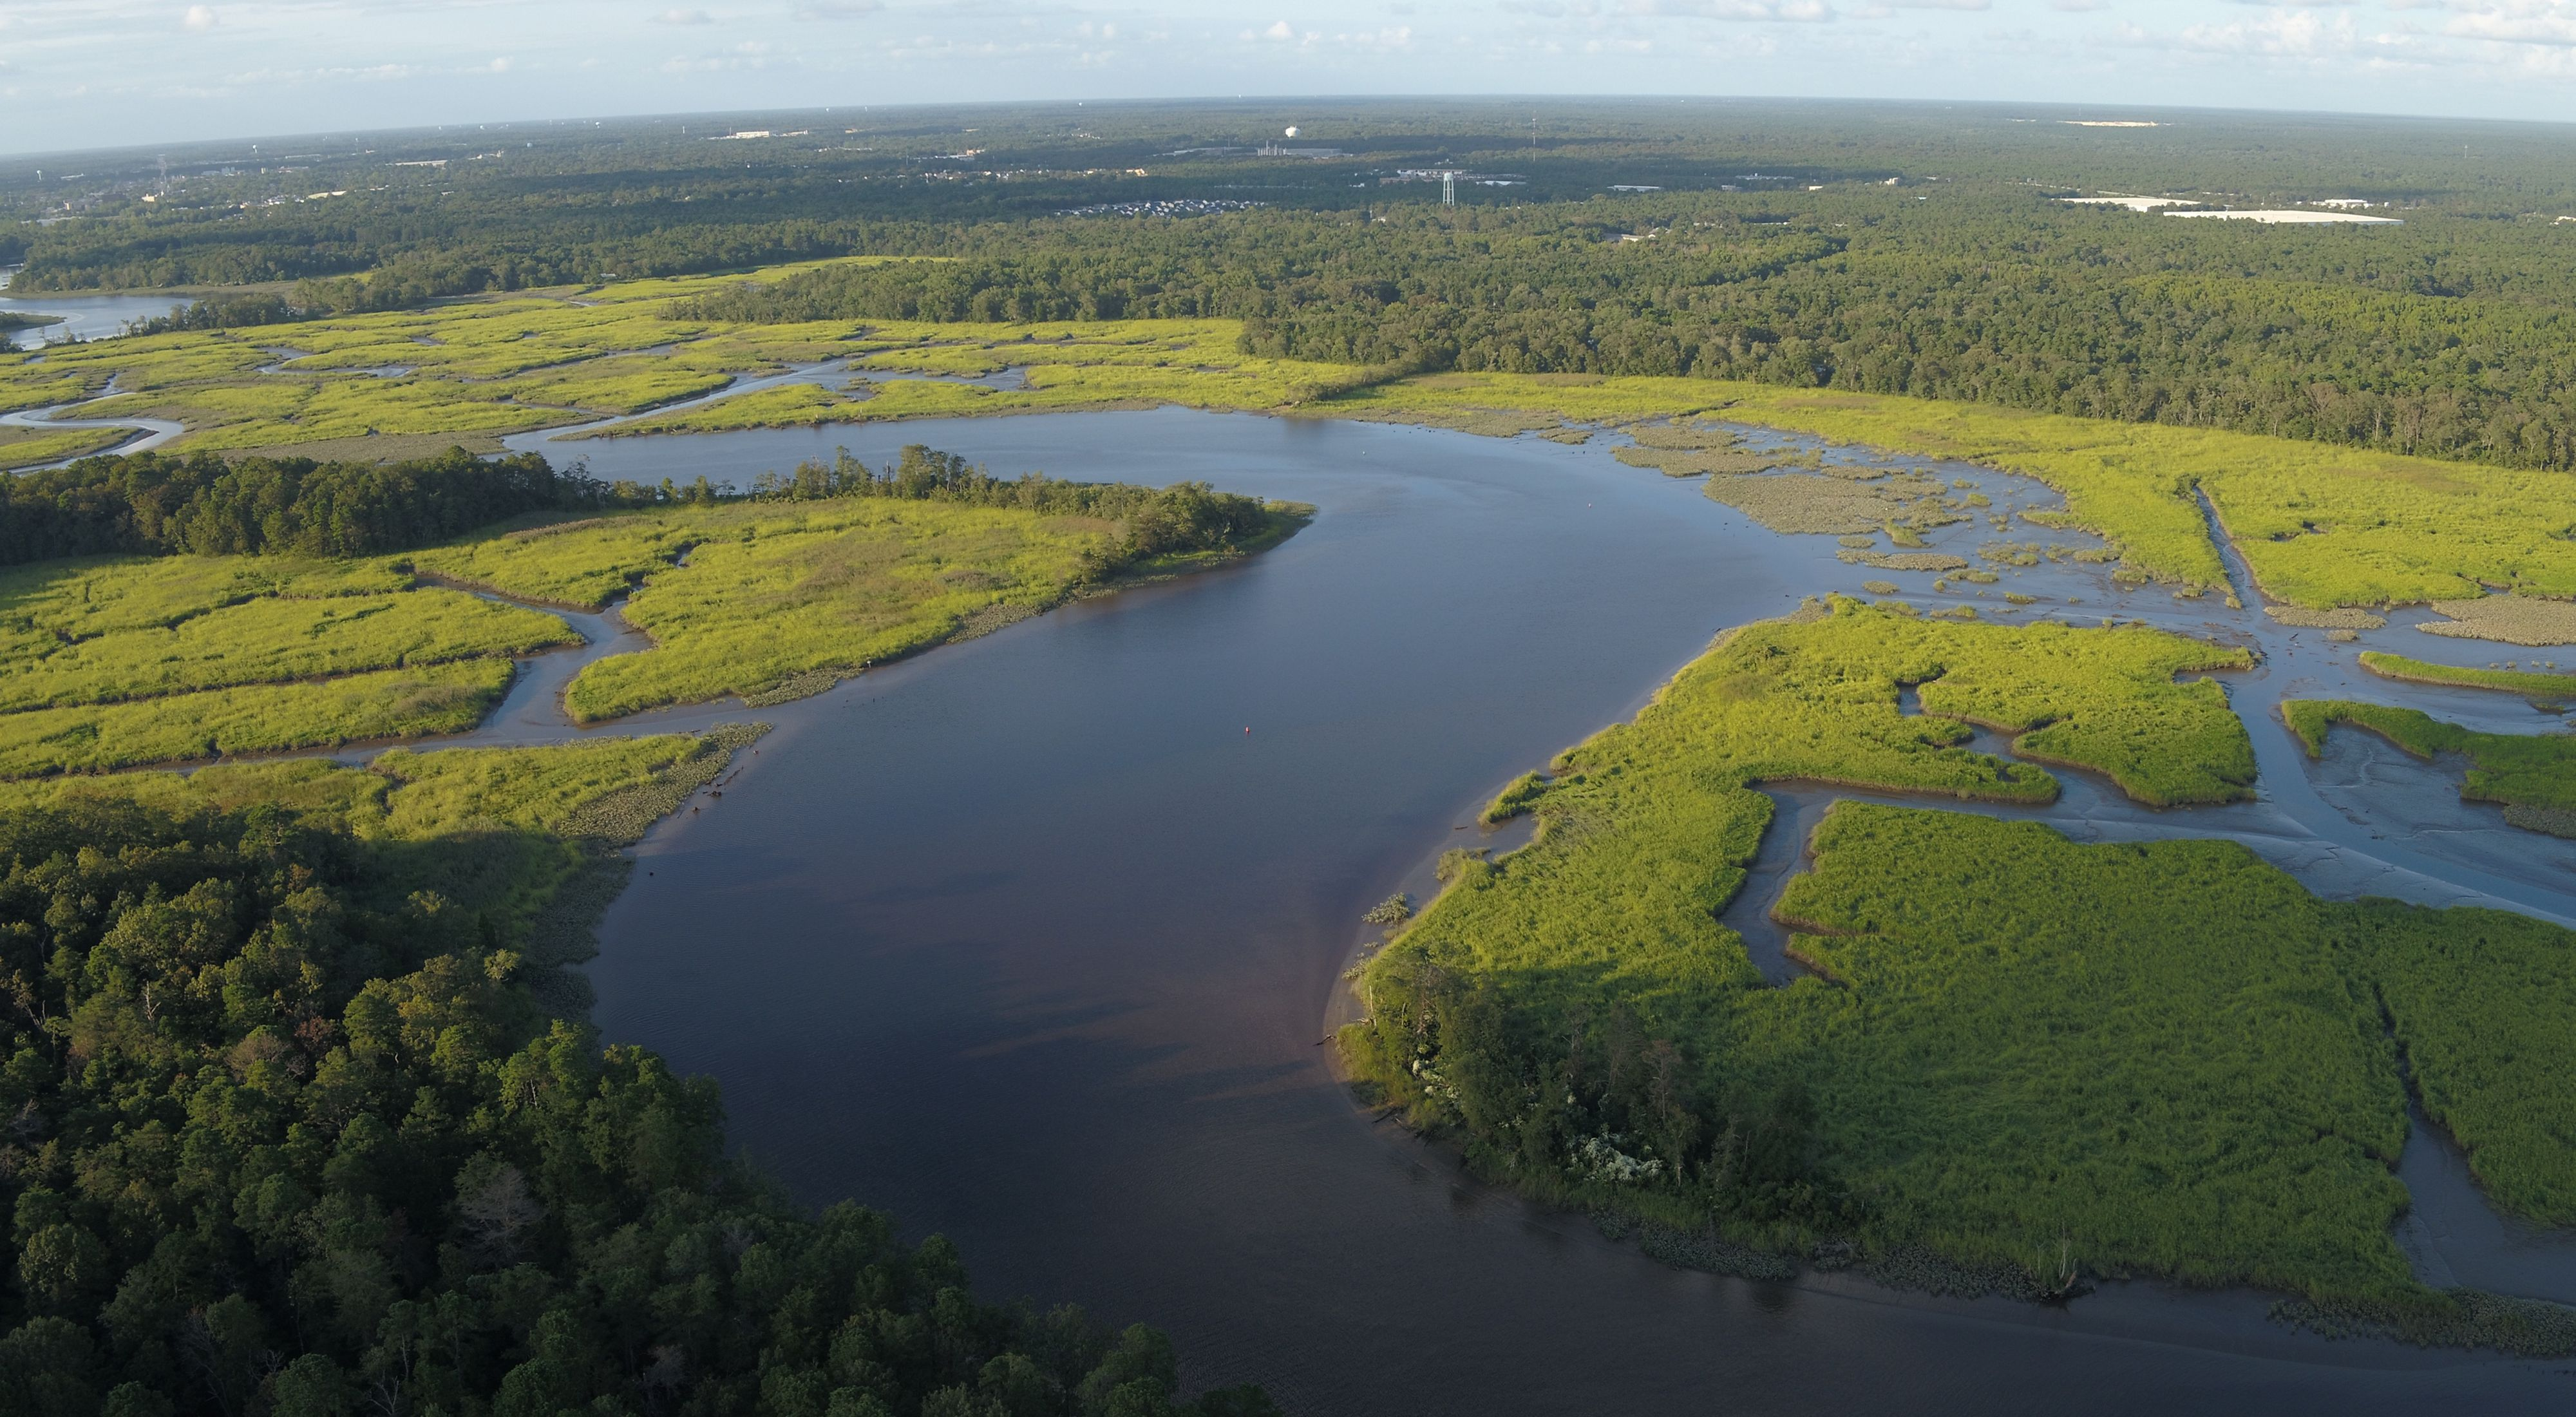 Aerial view of a stream and wetlands at Maurice River Bluffs Preserve.